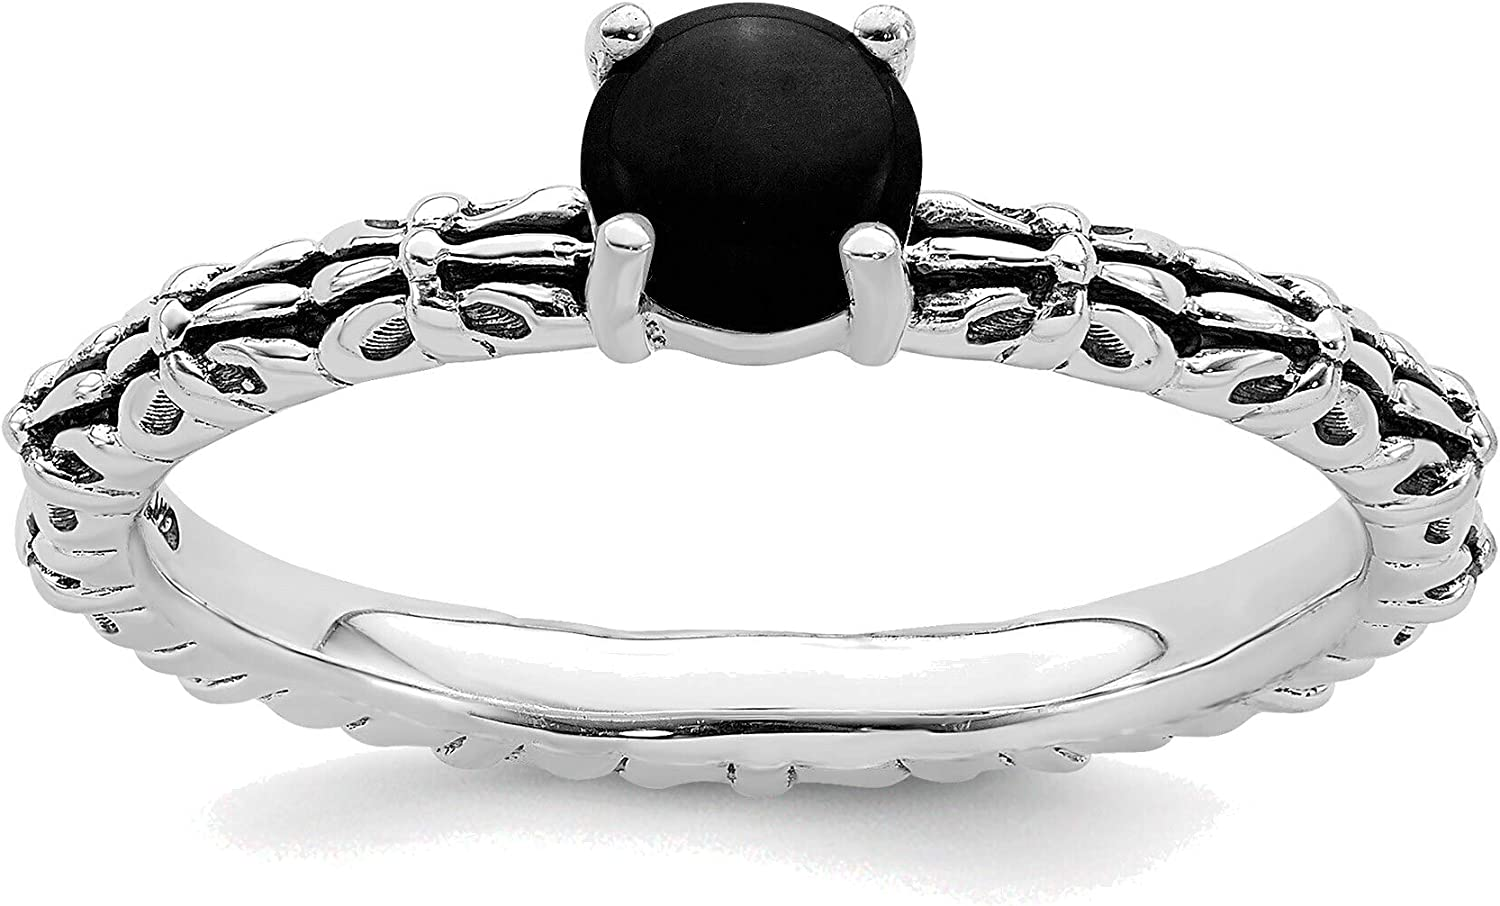 Bonyak Jewelry Solid Sterling Silver Expressions Ranking TOP6 Max 75% OFF Antiq Stackable